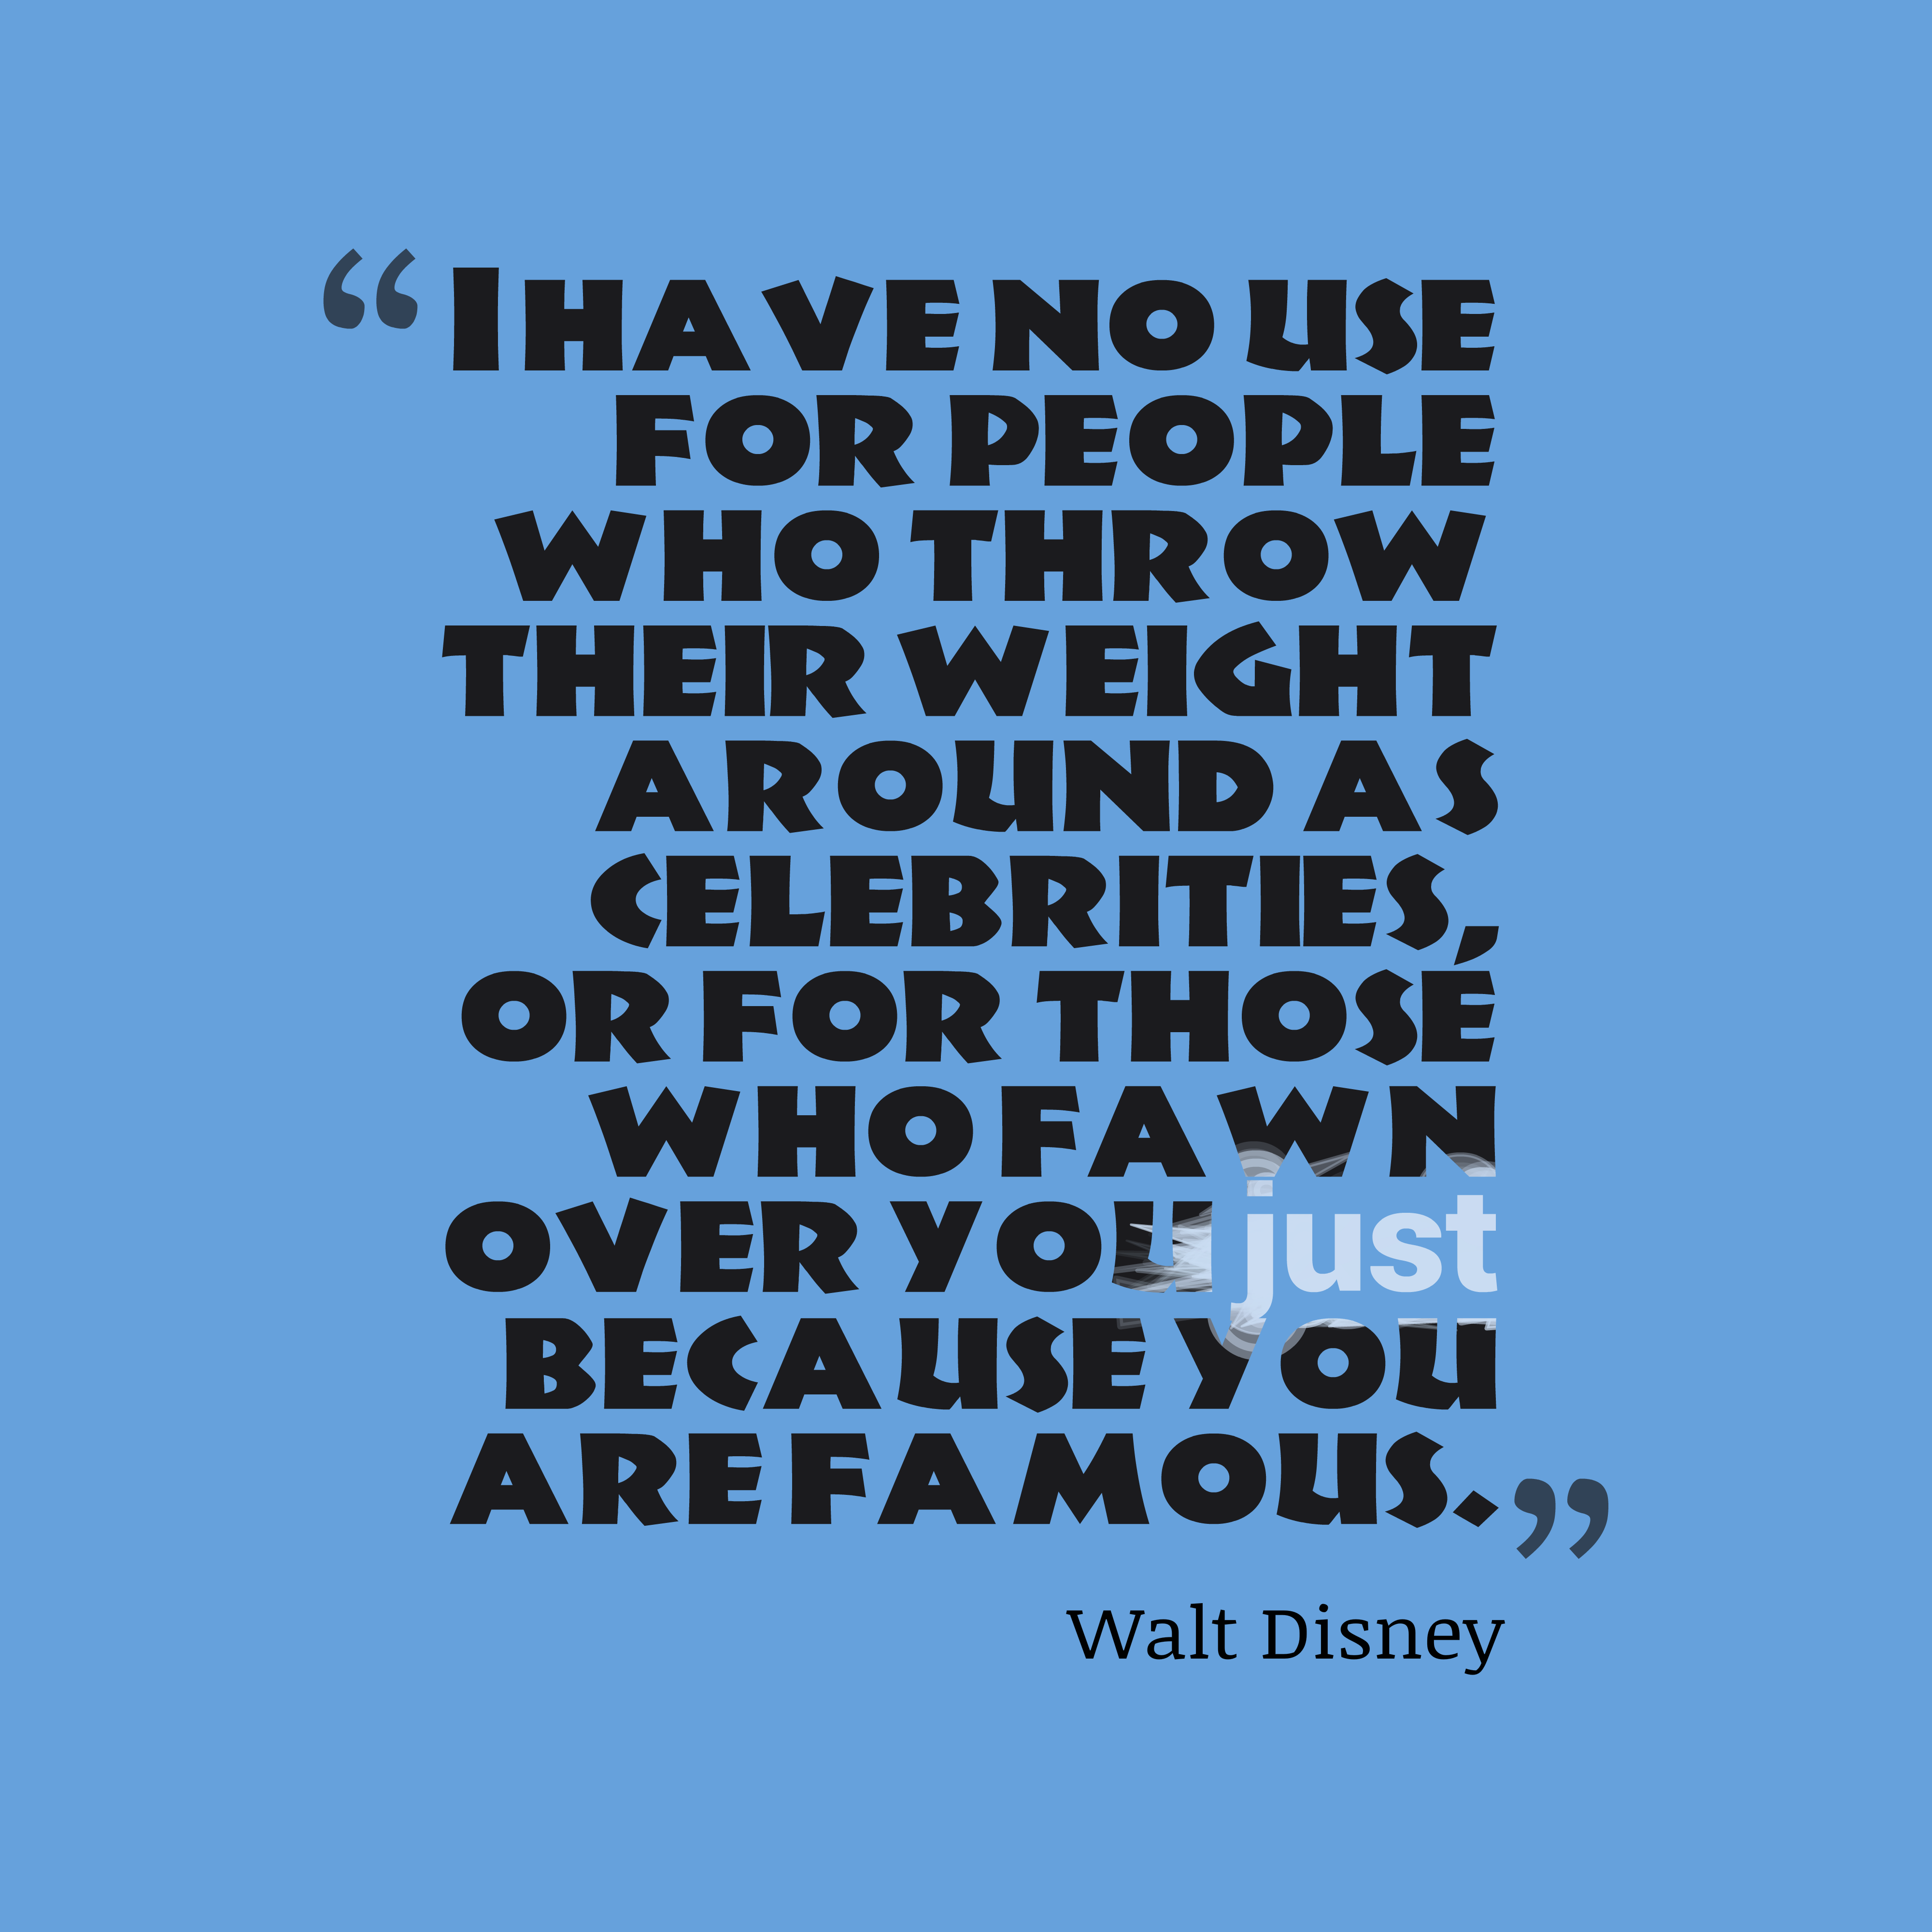 Walt Disney Quote About Famous